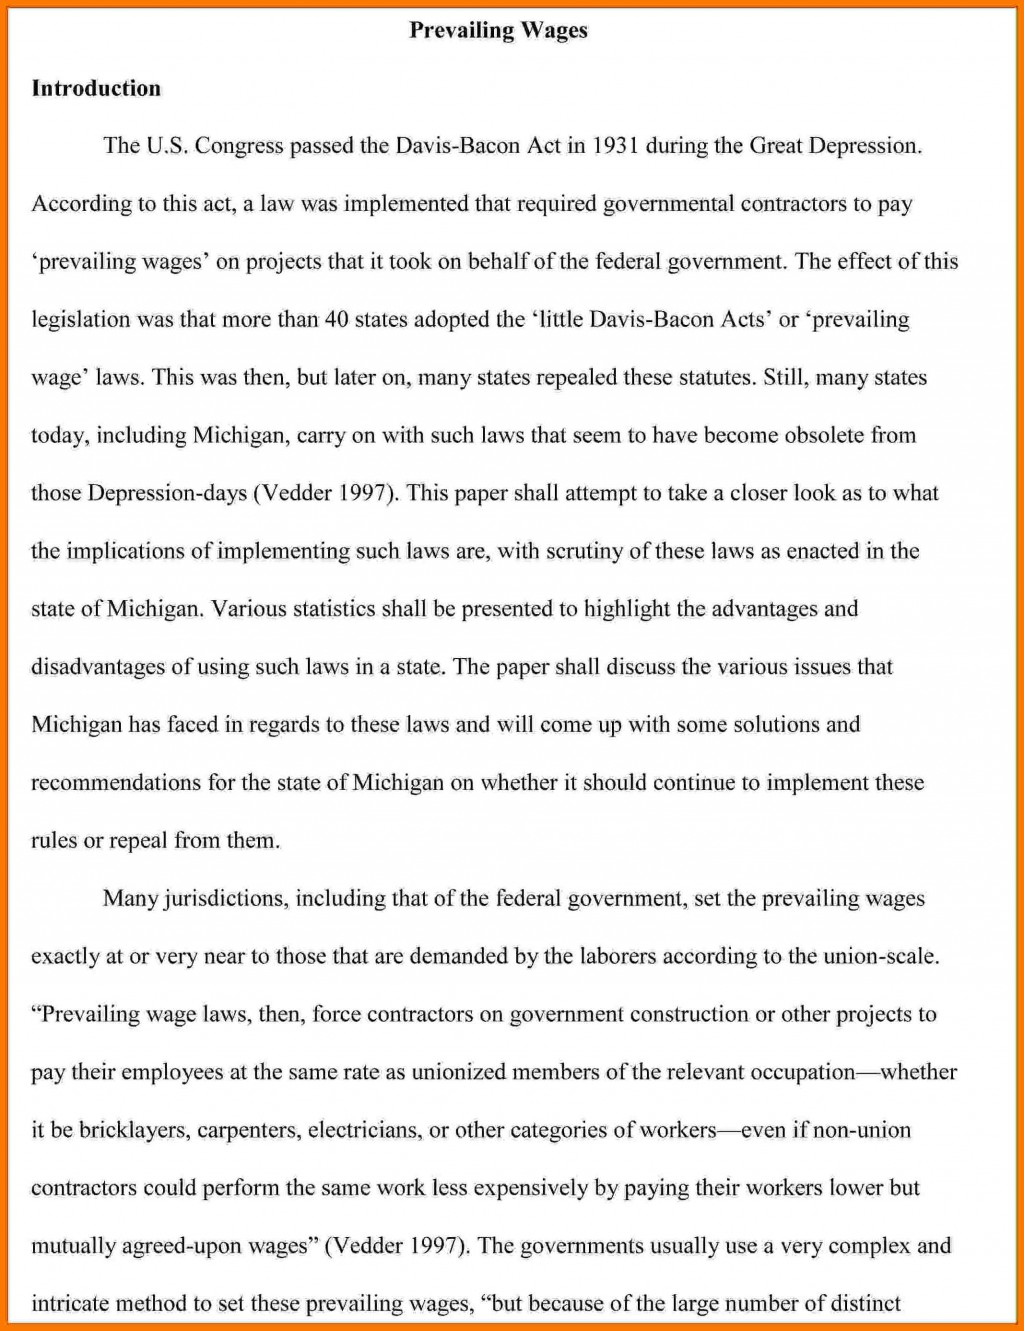 002 Collection Of Solutions Introduction Apa Paper Great Research How To Write Archaicawful For Sample Writing An A Style Large